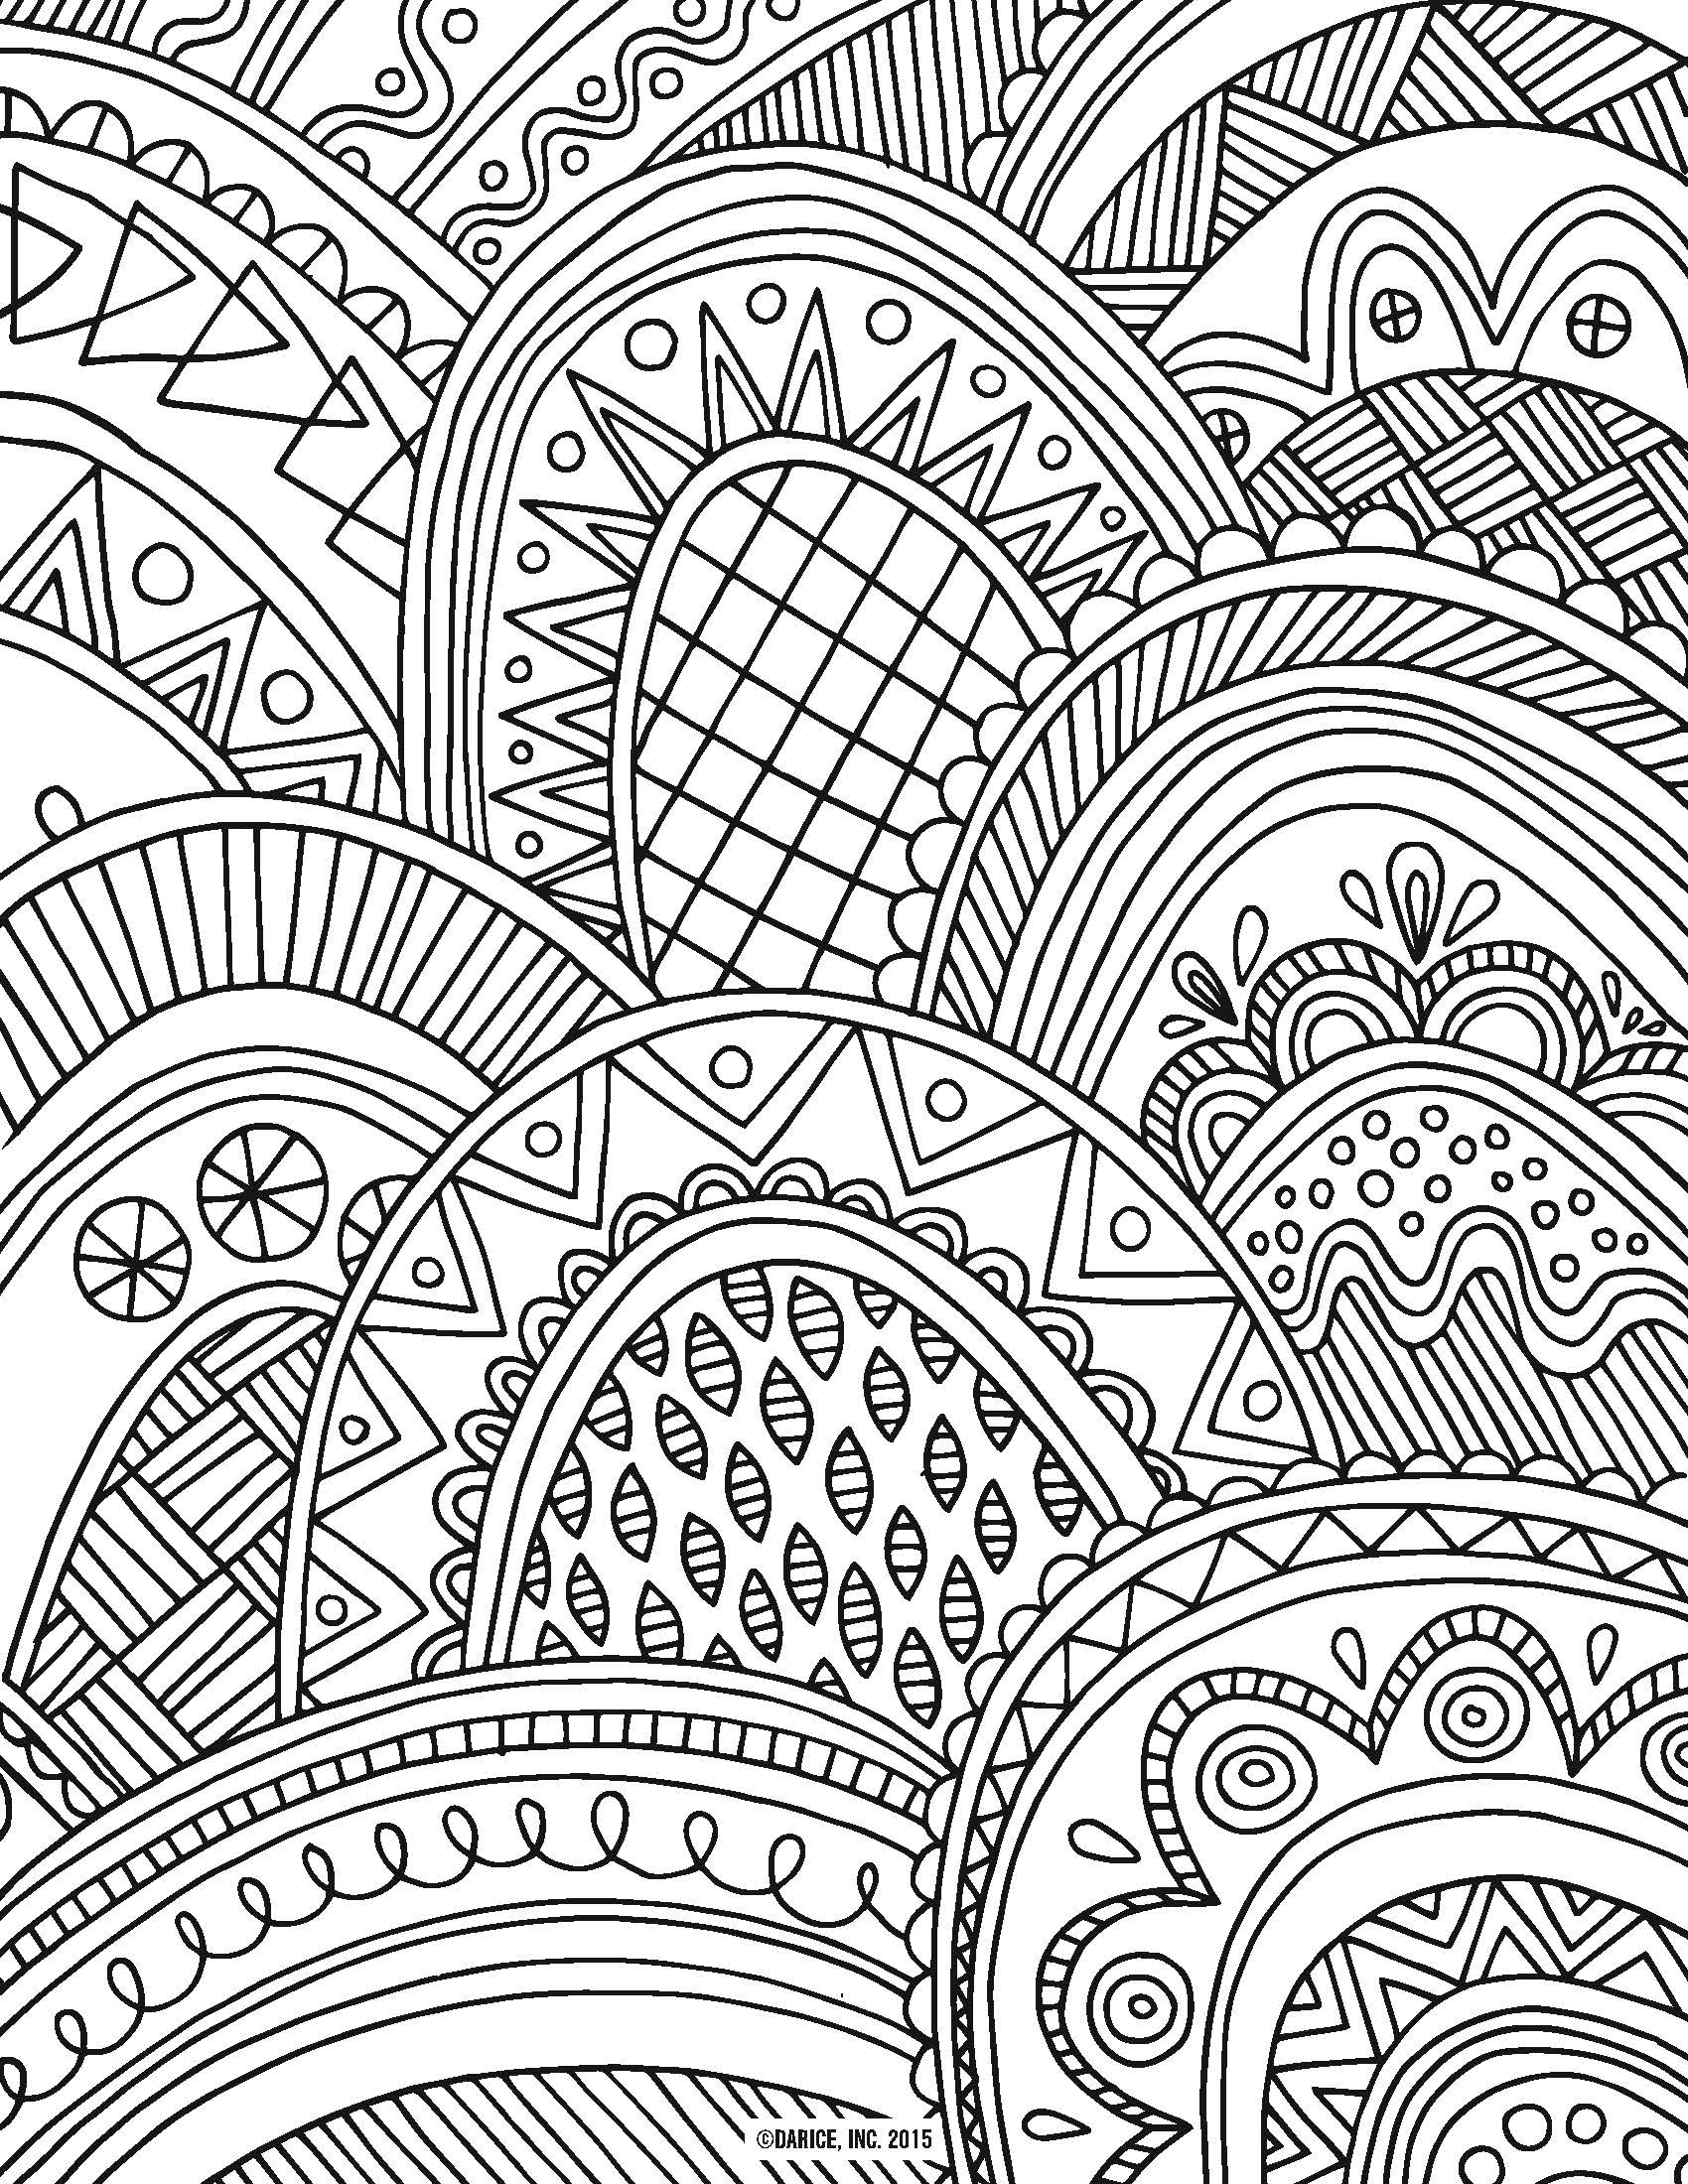 free printable coloring pictures free printable puppies coloring pages for kids pictures coloring printable free